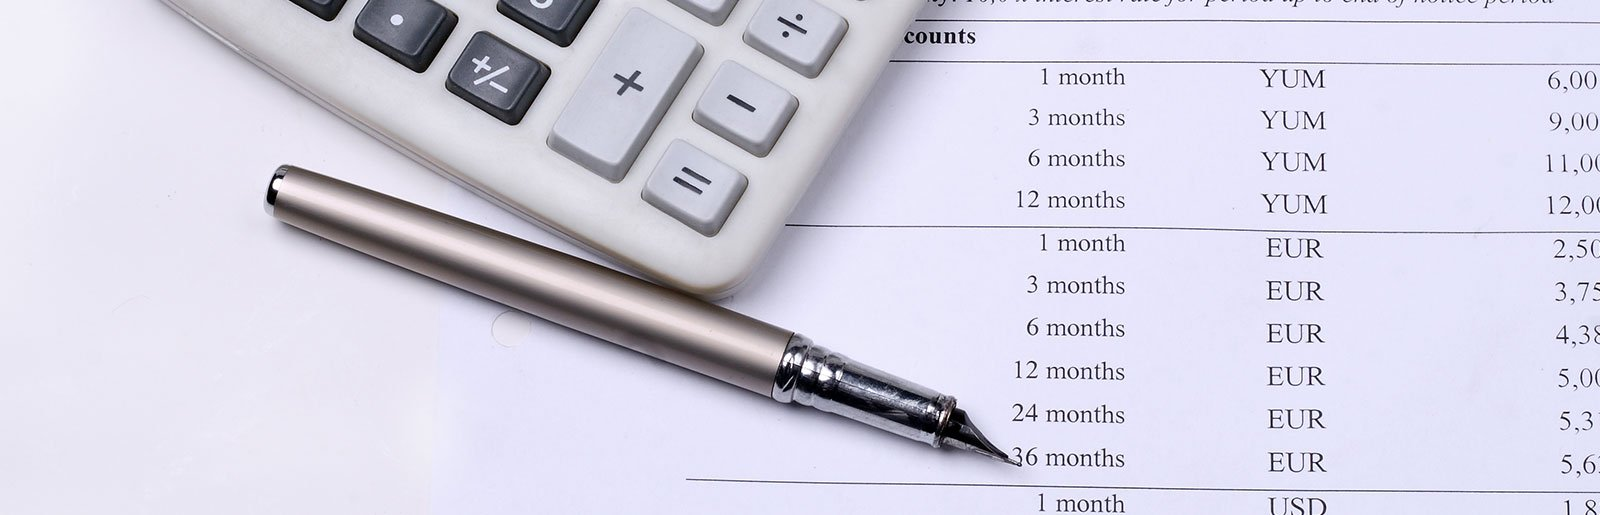 calculator  and pen with white paper